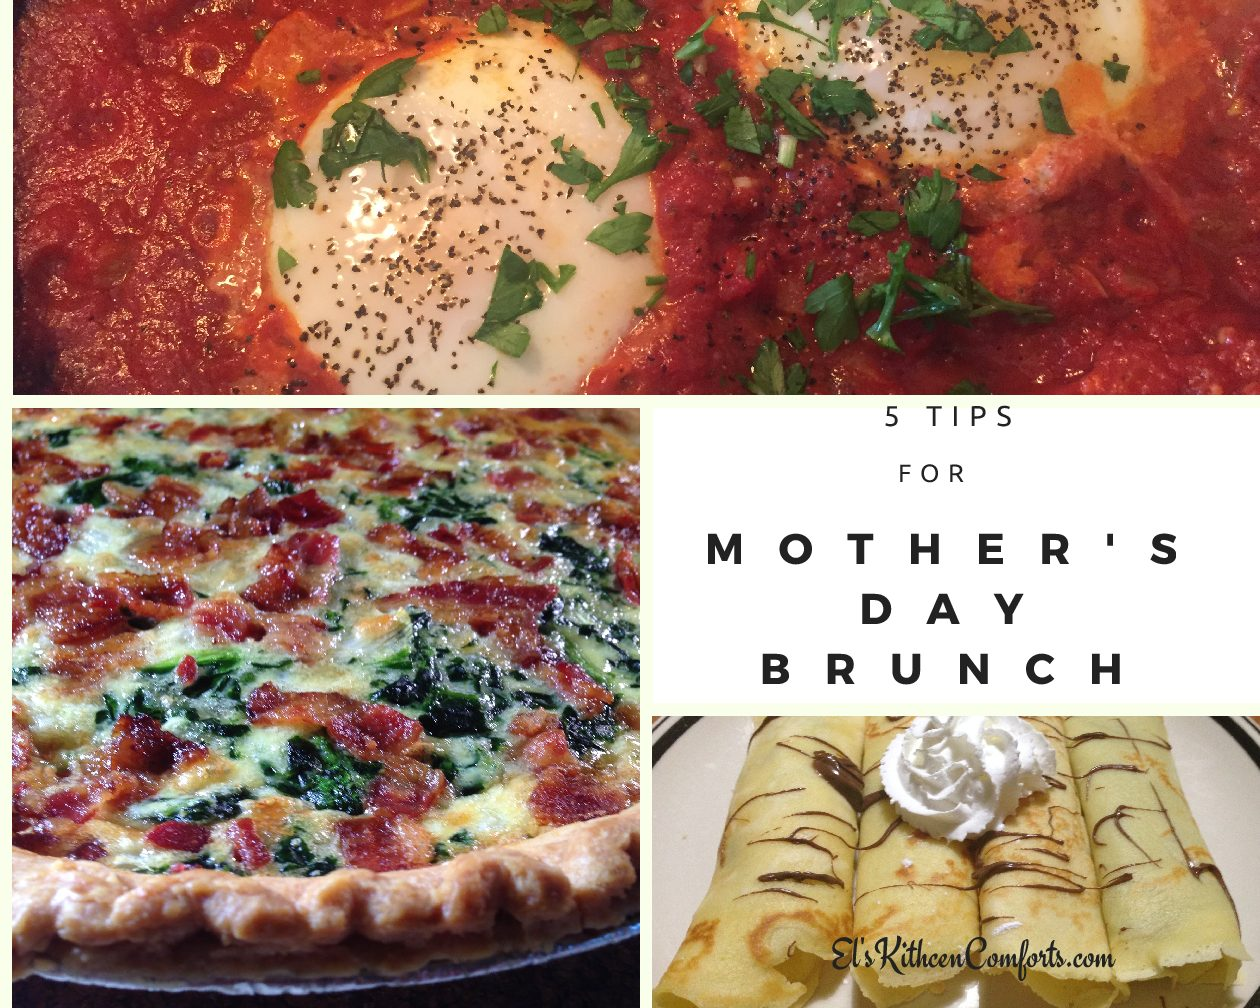 5 Tips for Mother's Day Brunch